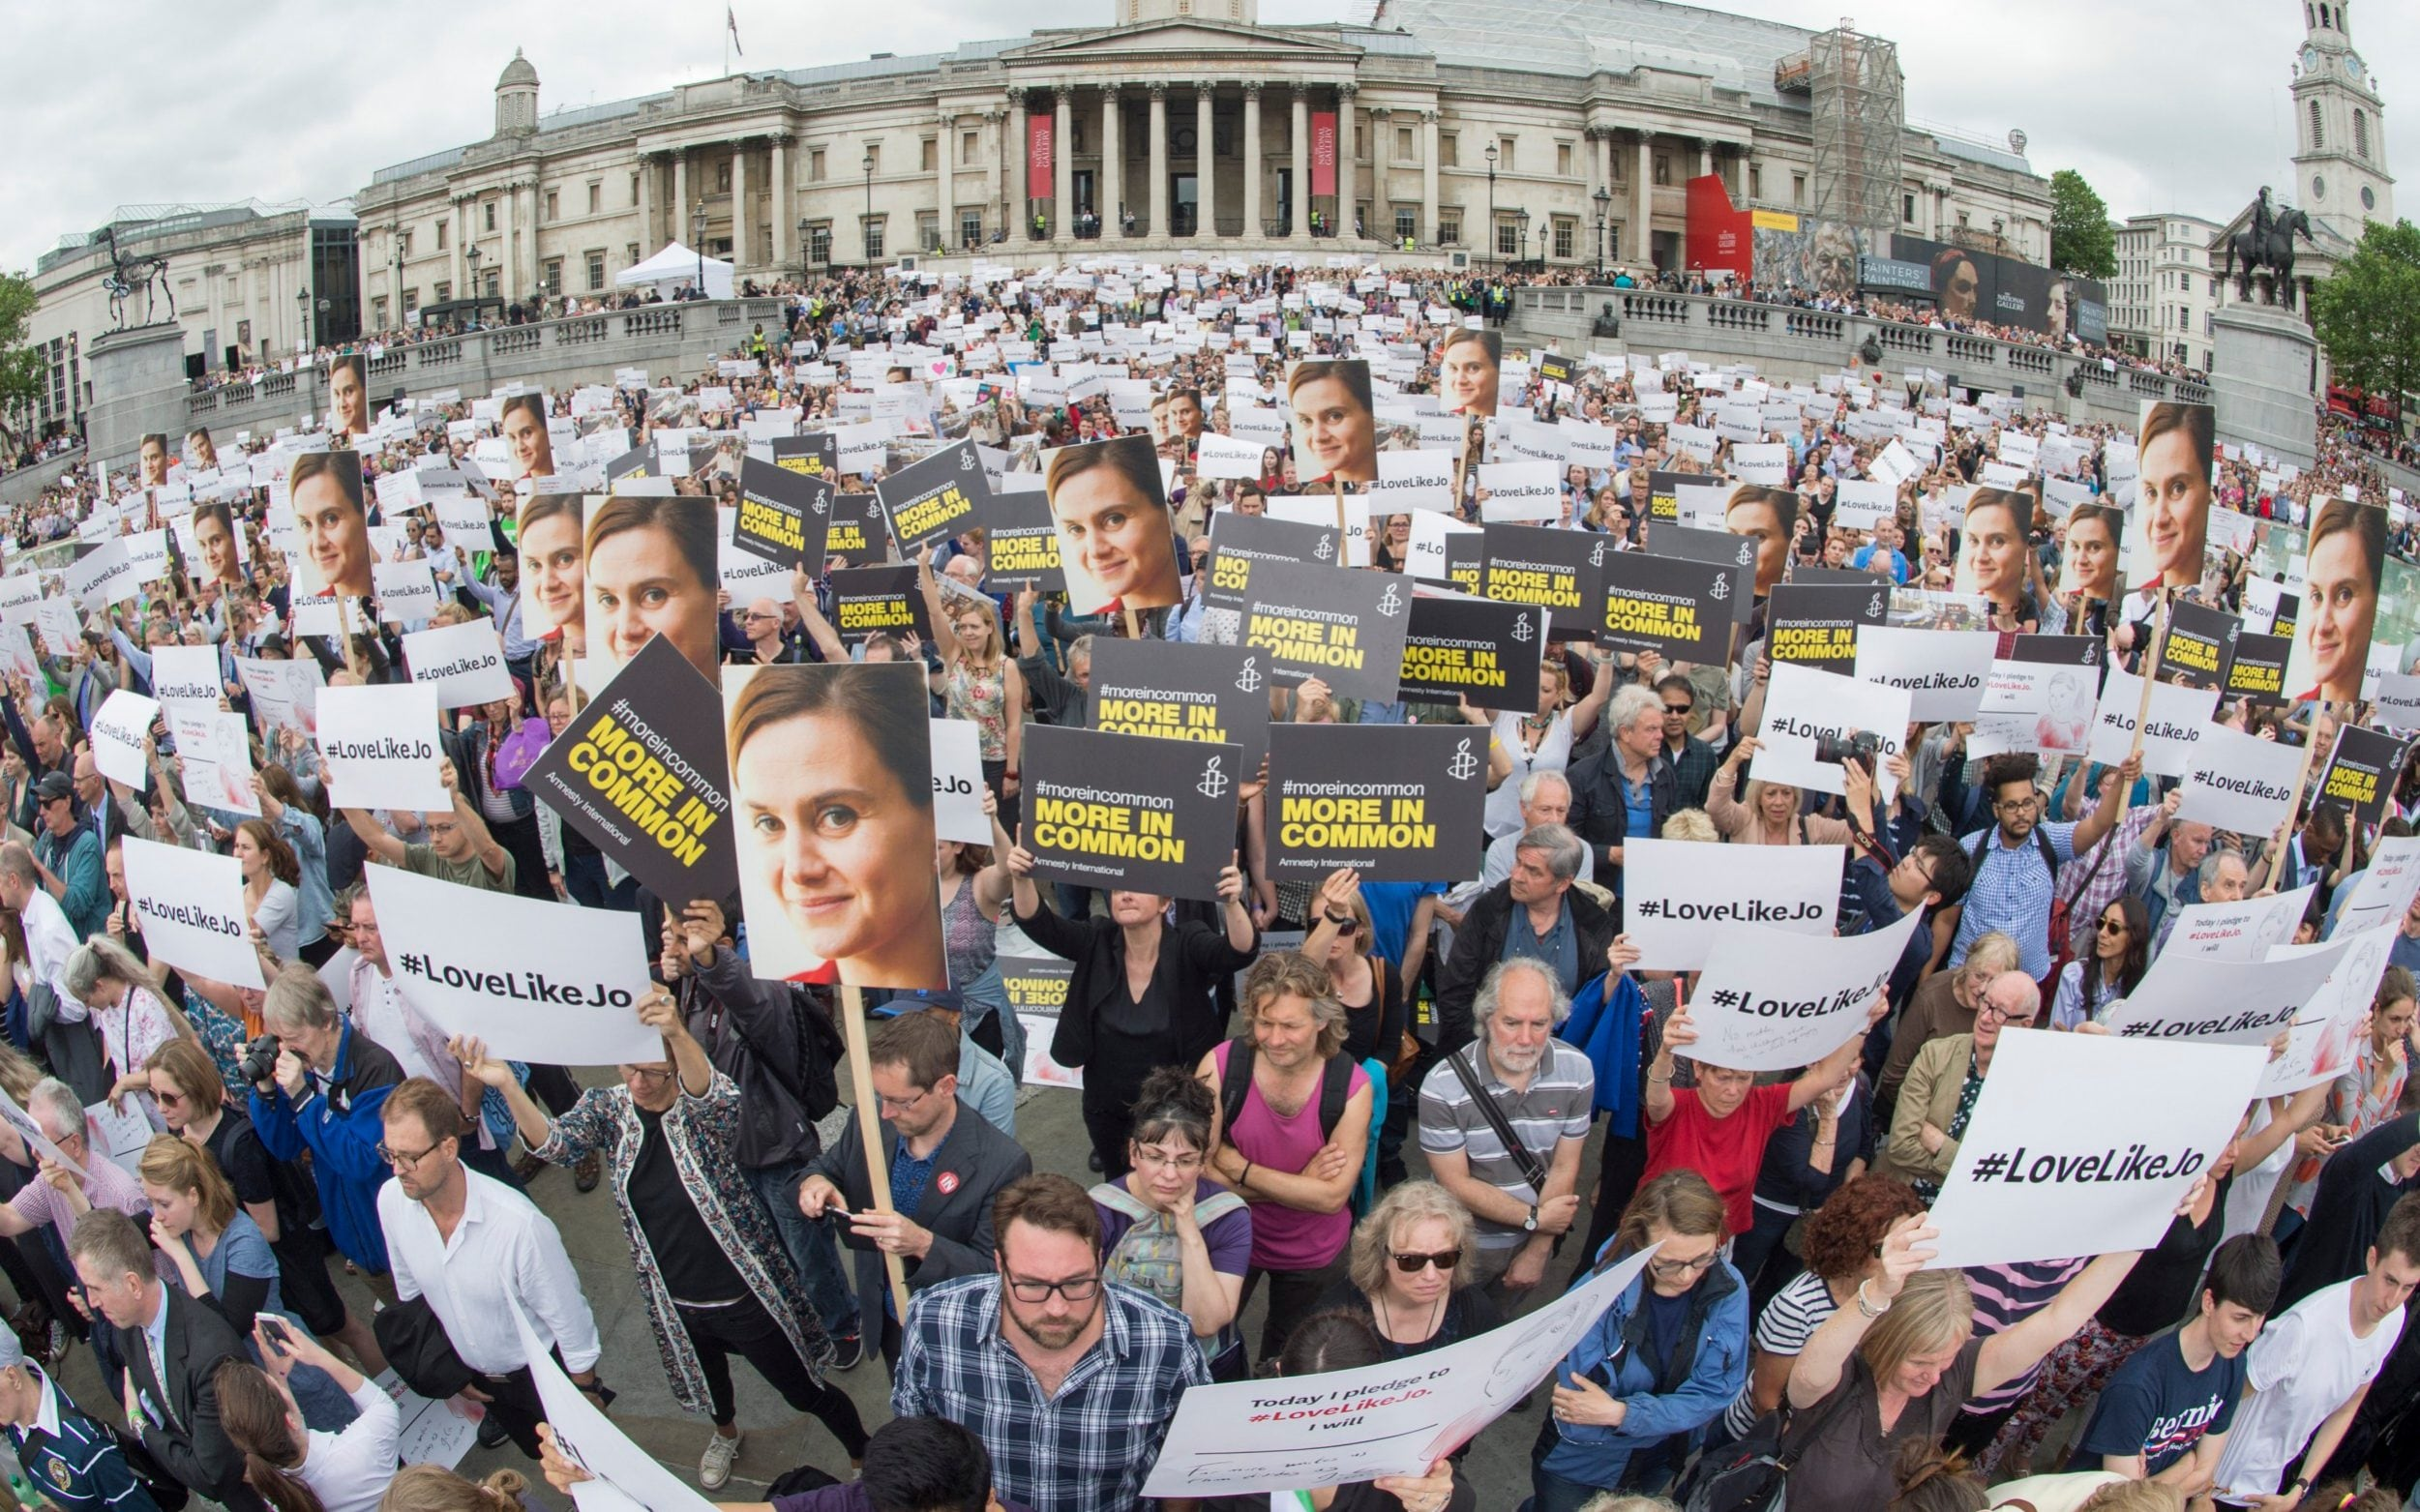 A huge crowd of people hold placards with photographs of the murdered MP Jo Cox and others saying '#LoveLikeJo'